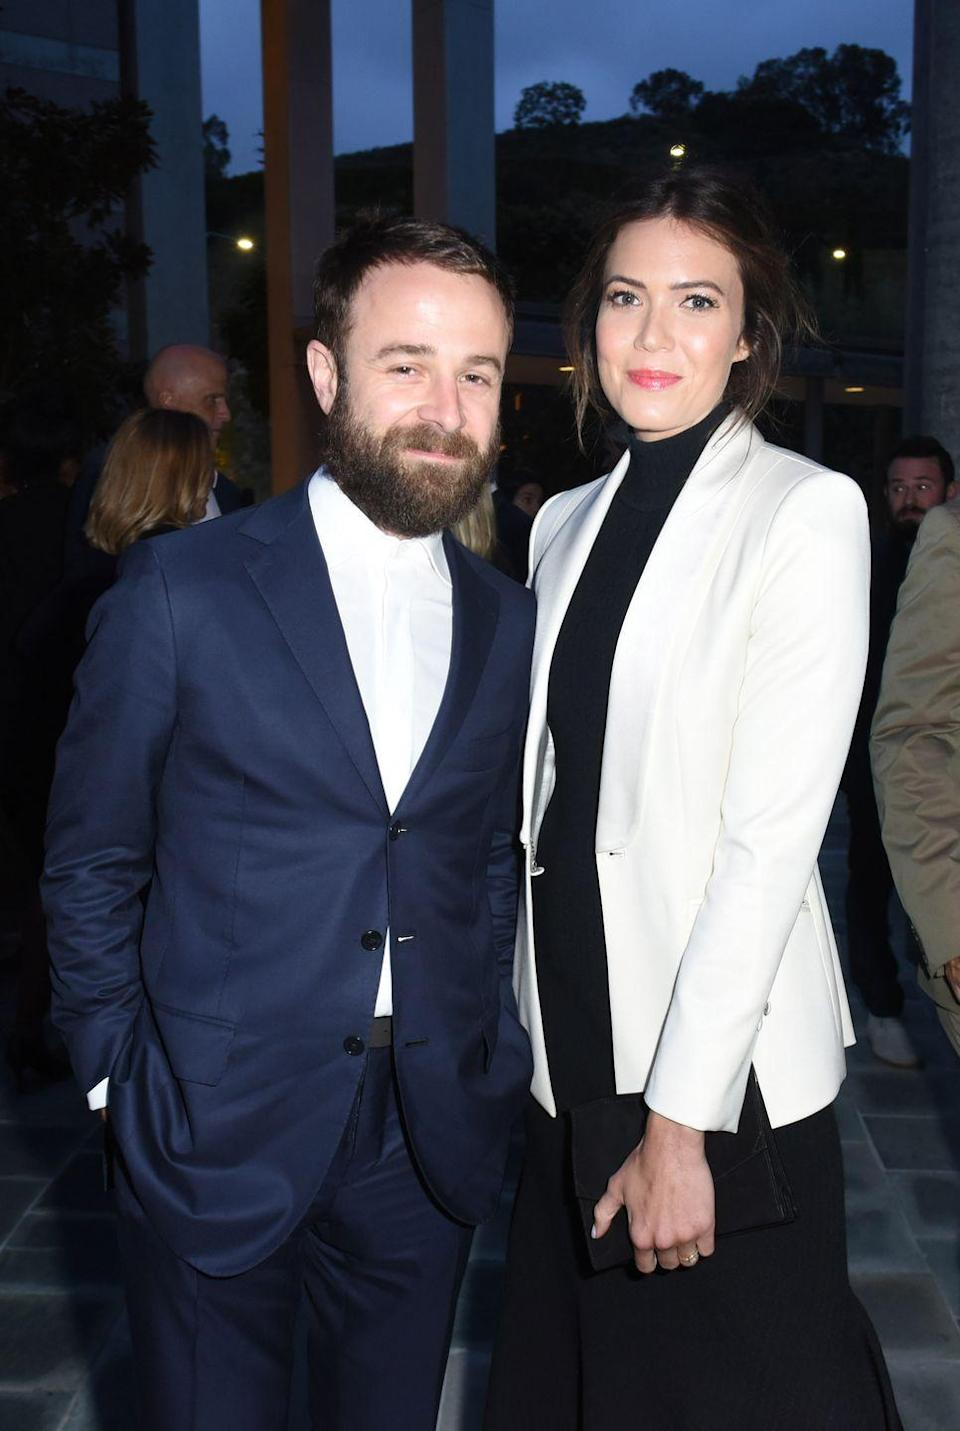 """<p>While she was still healing from her divorce, Moore met Goldsmith, the frontman of the band Dawes. They got married in 2018 and in <a href=""""https://www.glamour.com/story/mandy-moore-november-2018-cover-story"""" rel=""""nofollow noopener"""" target=""""_blank"""" data-ylk=""""slk:her words"""" class=""""link rapid-noclick-resp"""">her words</a>: """"He makes me melt. I can imagine no better partner."""" </p>"""